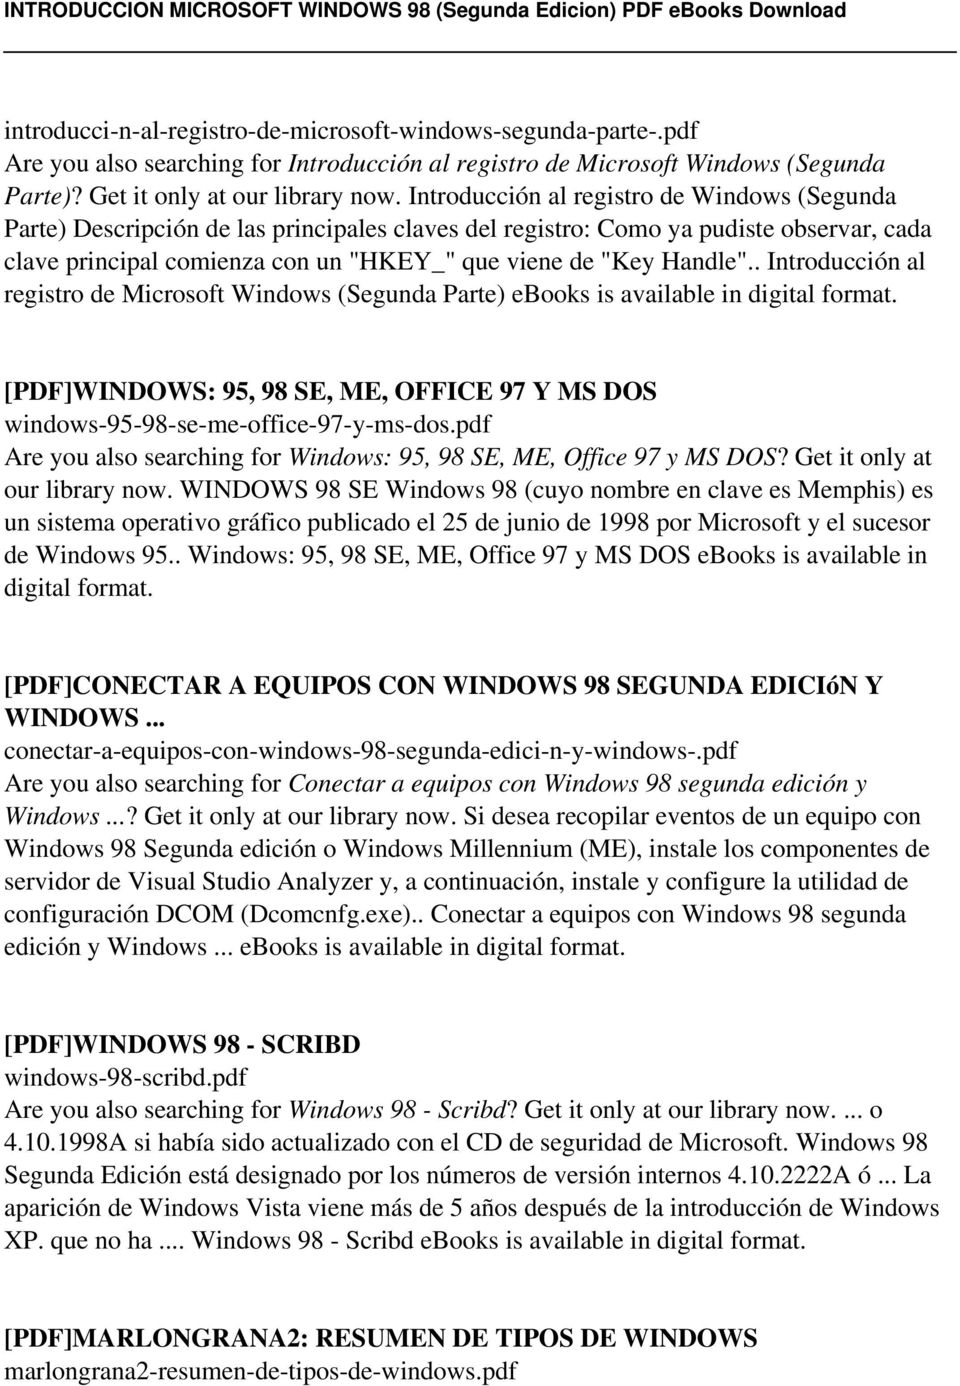 INTRODUCCION MICROSOFT WINDOWS 98 (Segunda Edicion) - PDF